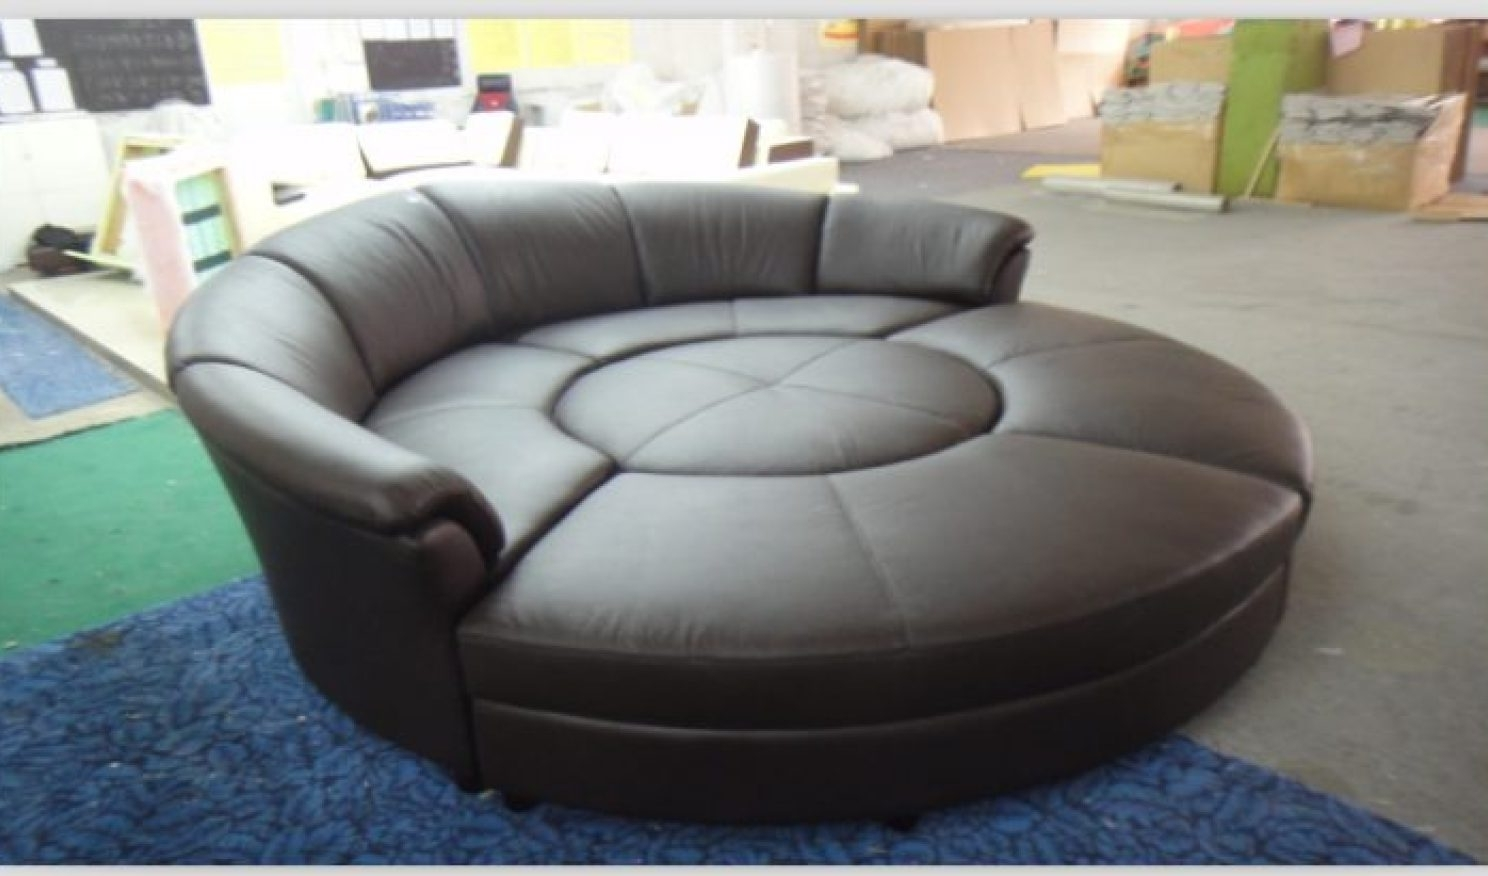 Spinning Sofa Chairs With Latest Sofa : Round Spinning Sofa Chair Round Sofa Chair Dfs Giant Round (View 19 of 20)